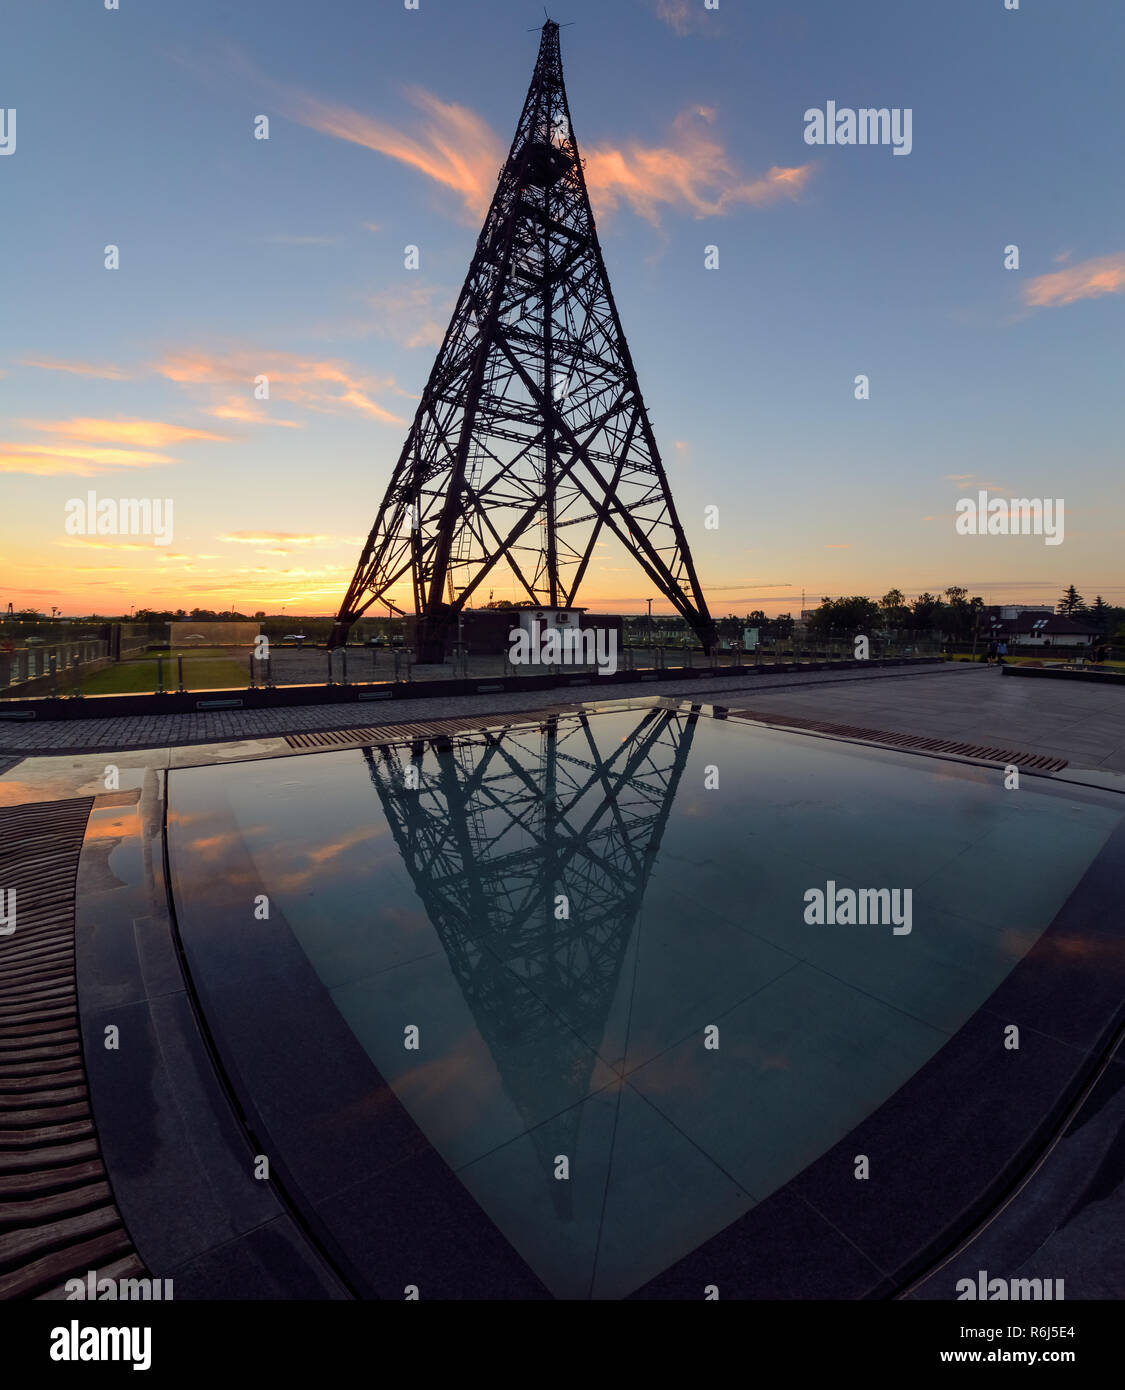 Historic radiostation tower in Gliwice and reflaction, Poland in sunset time. - Stock Image